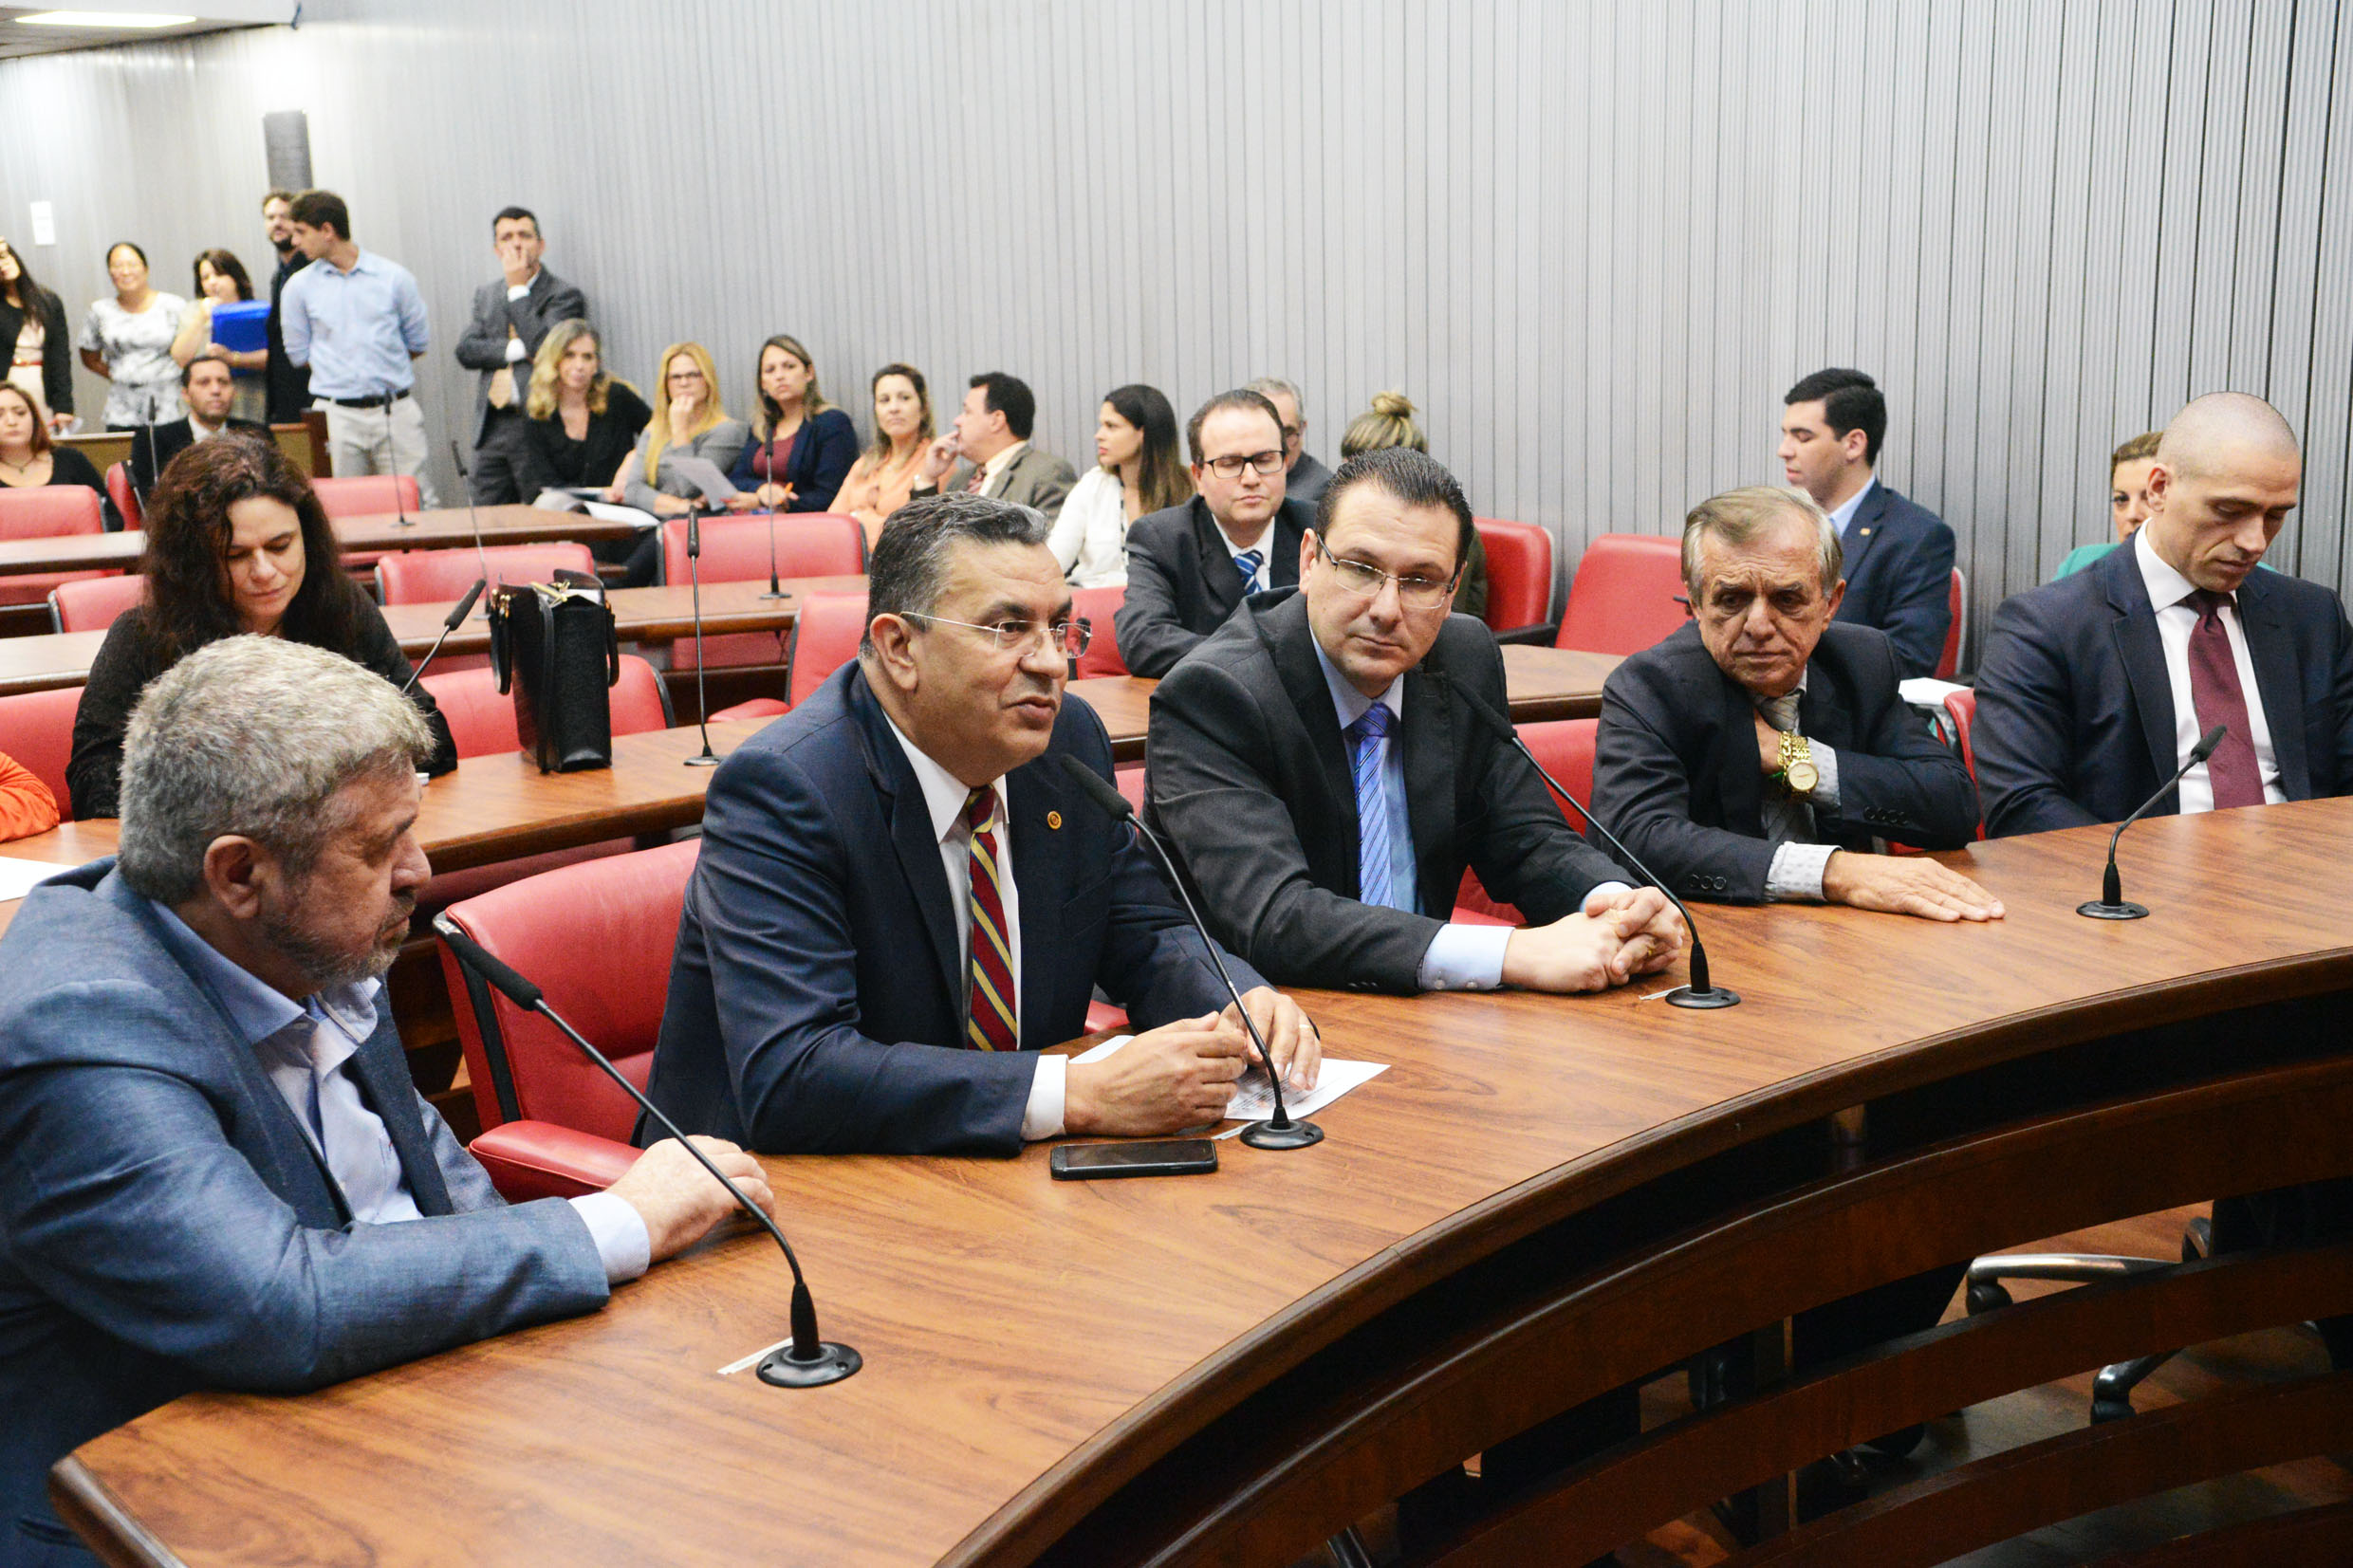 Parlamentares presentes<a style='float:right' href='https://www3.al.sp.gov.br/repositorio/noticia/N-04-2019/fg232596.jpg' target=_blank><img src='/_img/material-file-download-white.png' width='14px' alt='Clique para baixar a imagem'></a>